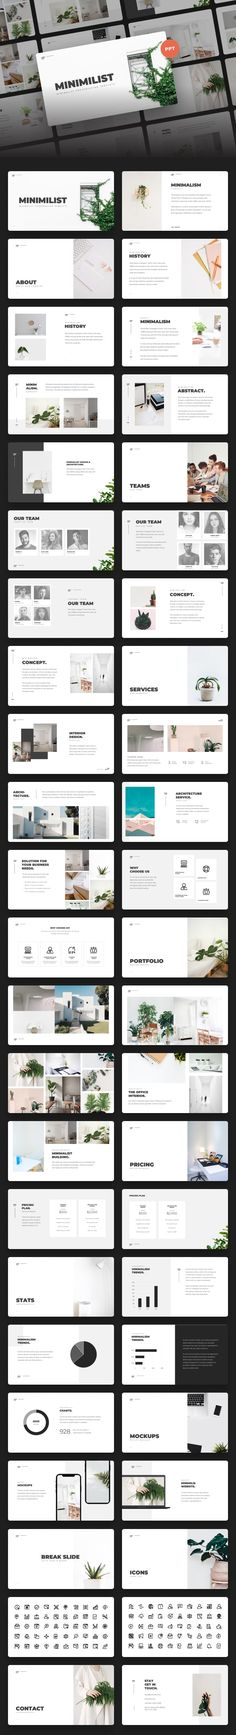 Buy Minimilis - Minimalist Business Power Point Template by mhudaaa on GraphicRiver. Minimilis – Minimalist Business Power Point Template Minimilis is presentation template that can be used for any var. Design Presentation, Business Presentation, Presentation Templates, Template Power Point, Presentation Backgrounds, Free Web Fonts, Design Brochure, Layout Design, Site Design